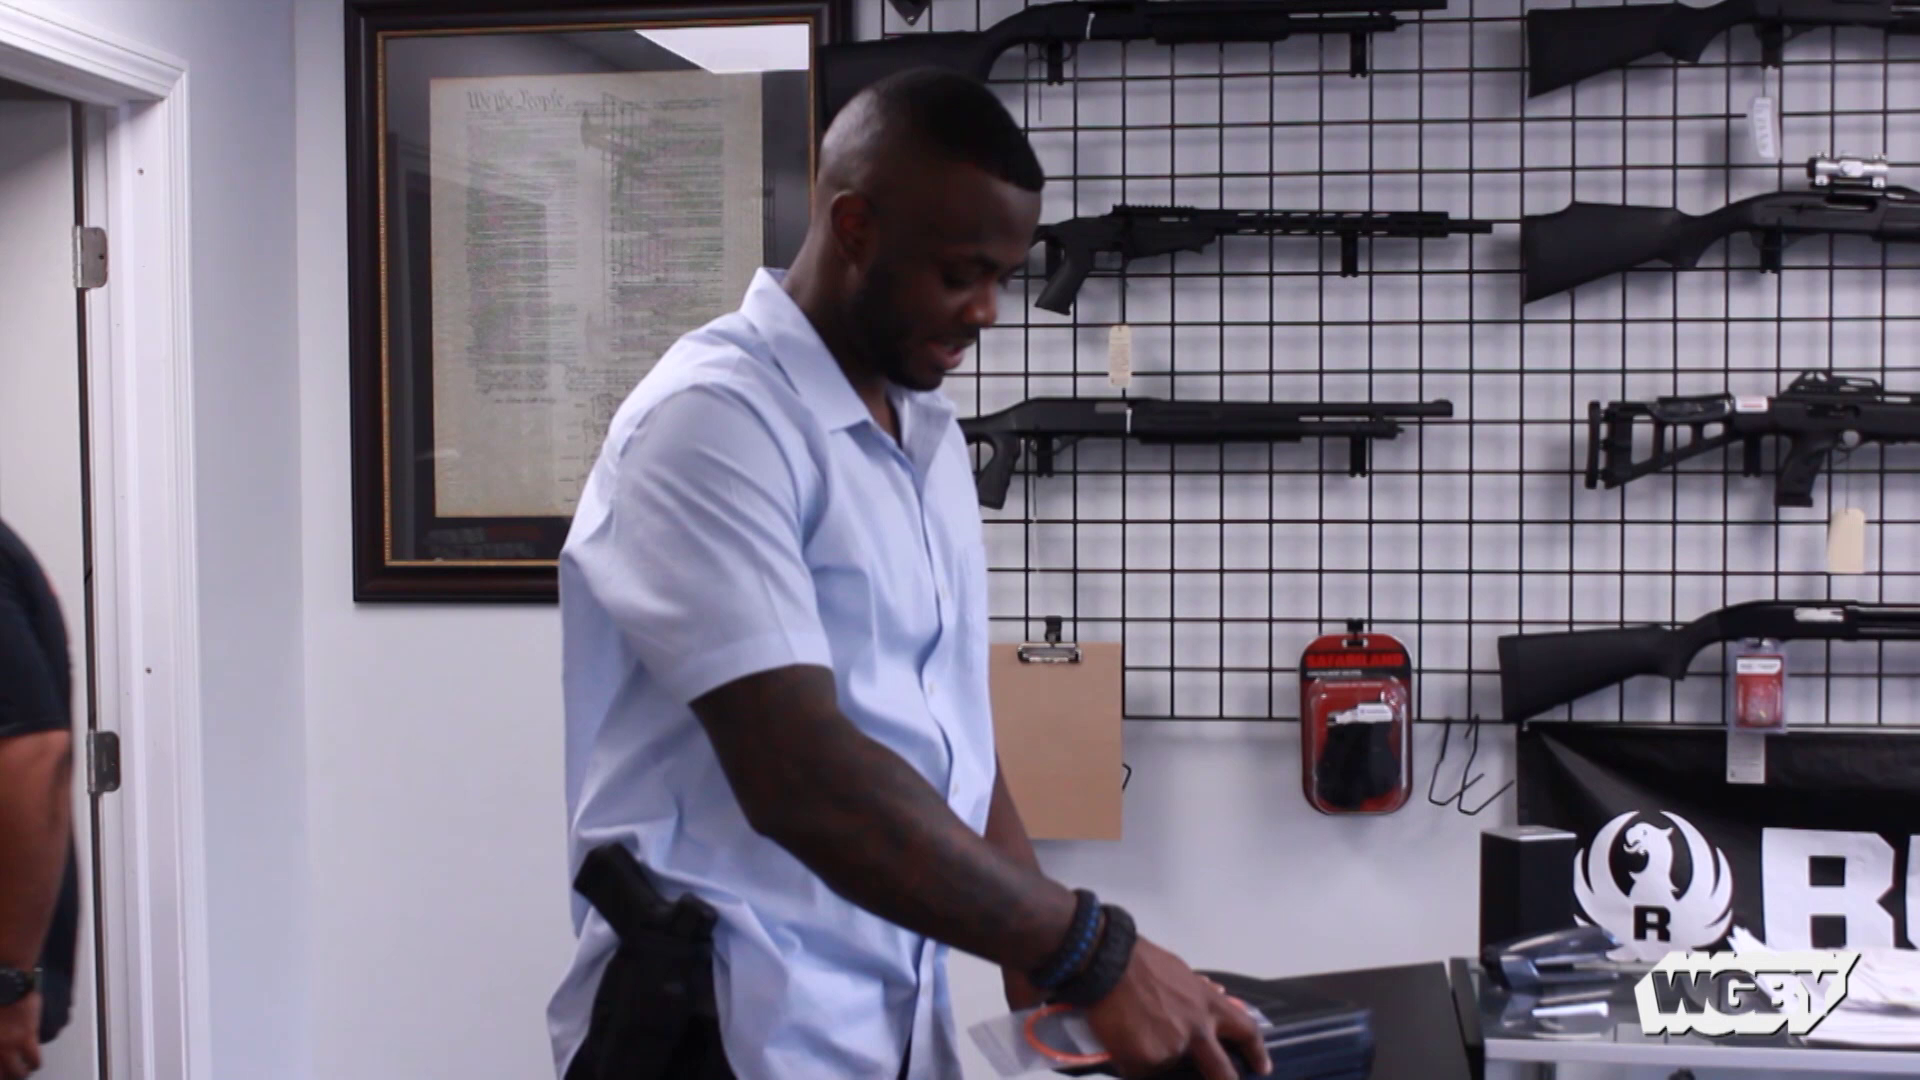 U.S. Army veteran Prince Taylor's passion for firearms and desire to be a business owner led to Armor Bearer Sports, Springfield, MA's first firearms store.